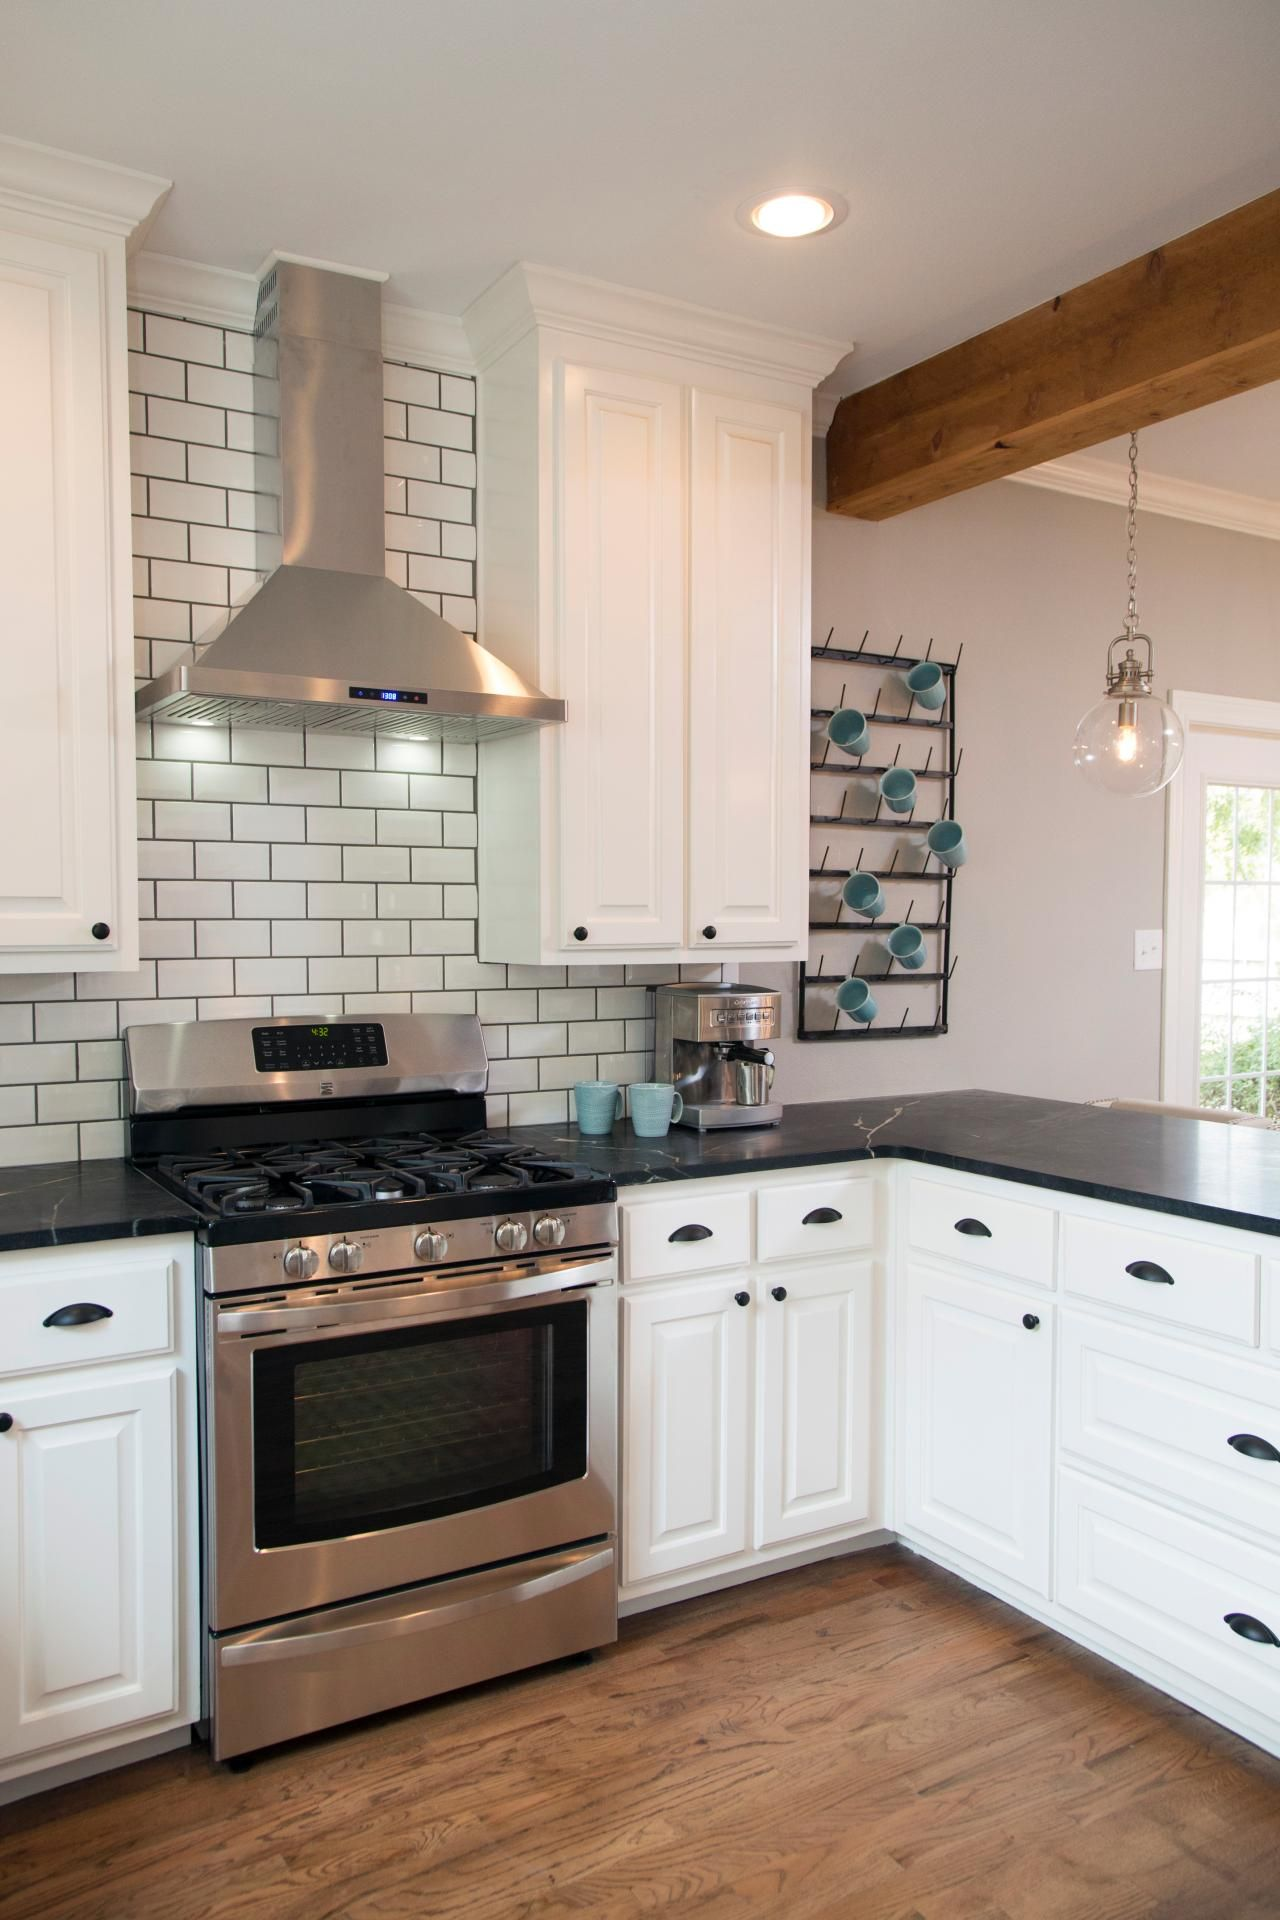 Fixer upper kitchen decor ideas - Fixer Upper Hosts Chip And Joanna Gaines Renovated The Homeowners Kitchen And Added A New